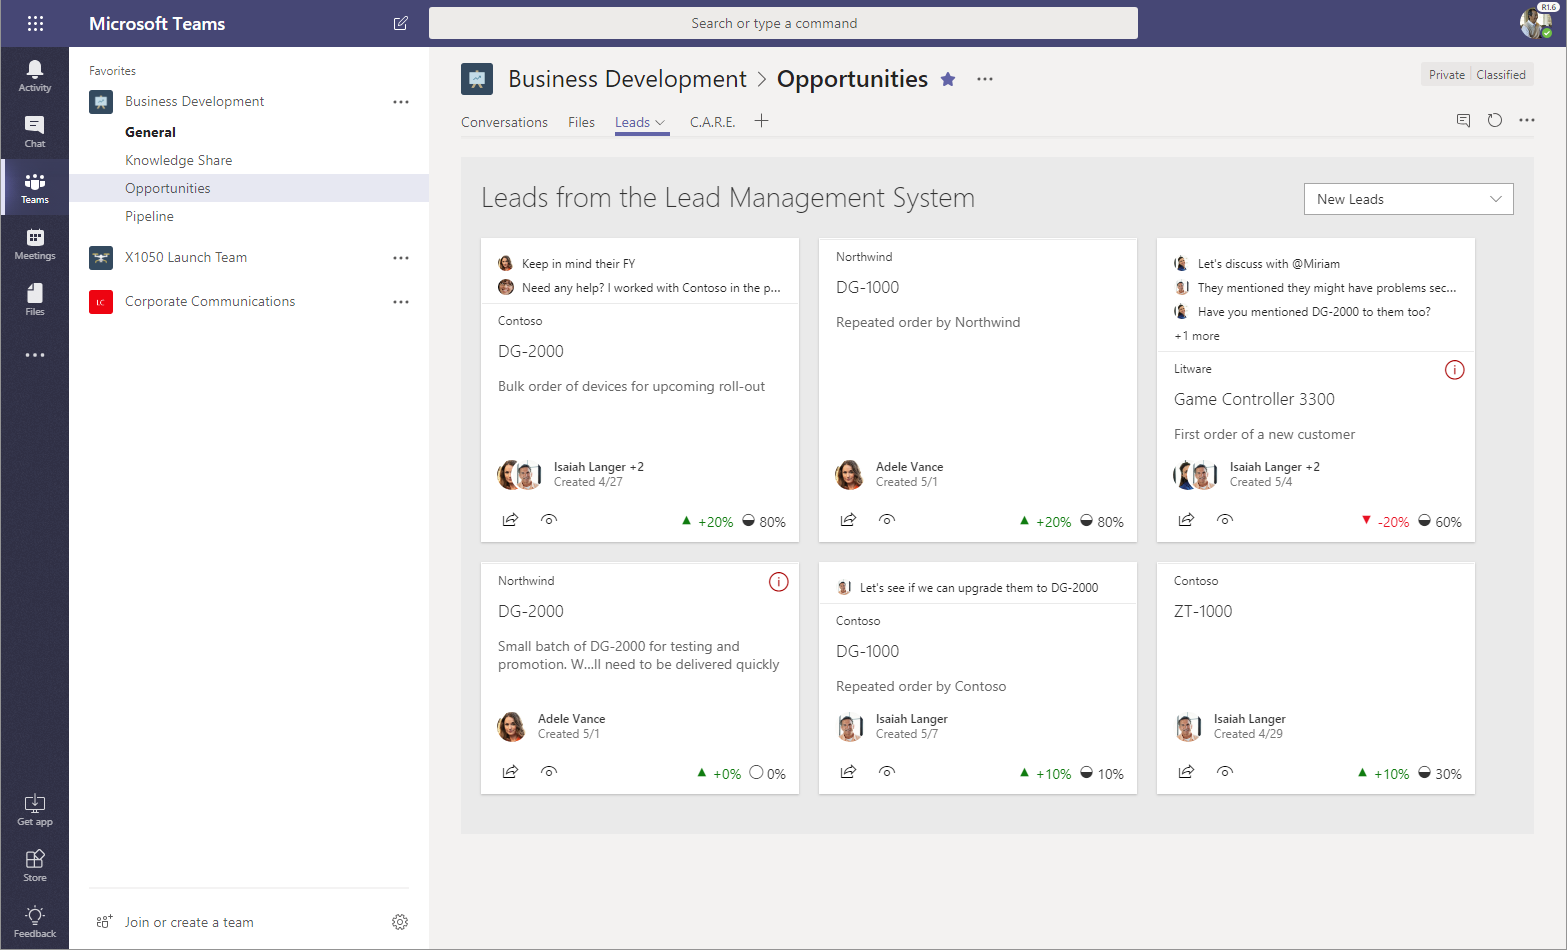 Image of a custom lead management system SharePoint Framework web part, hosted in Microsoft Teams.